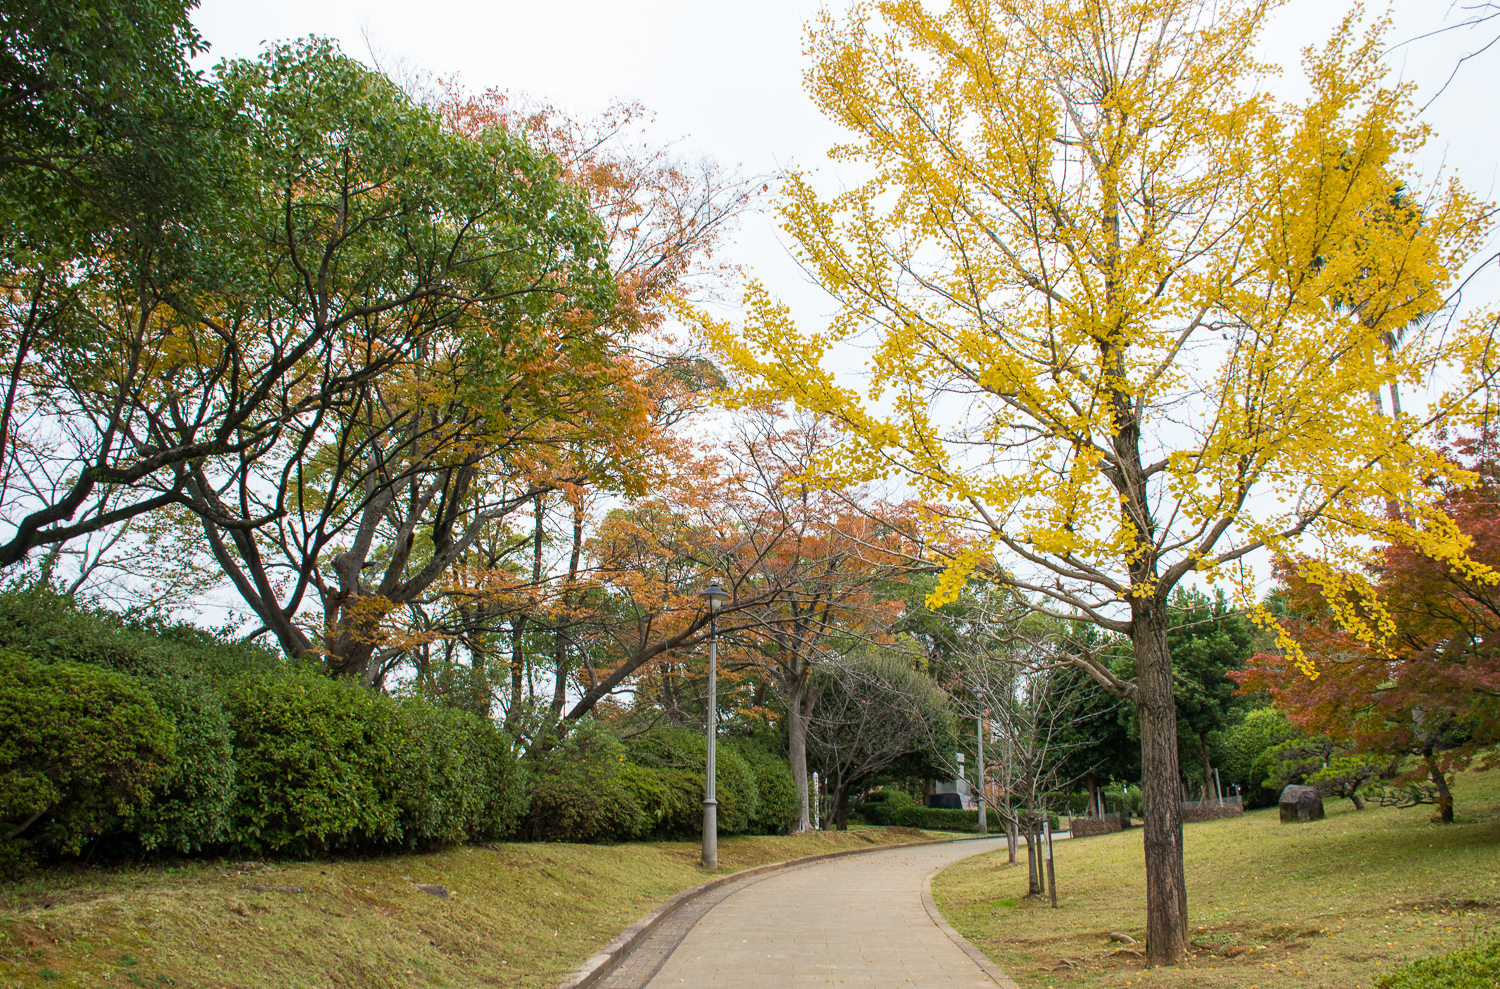 Autumn weather and trees in nagasaki peace park